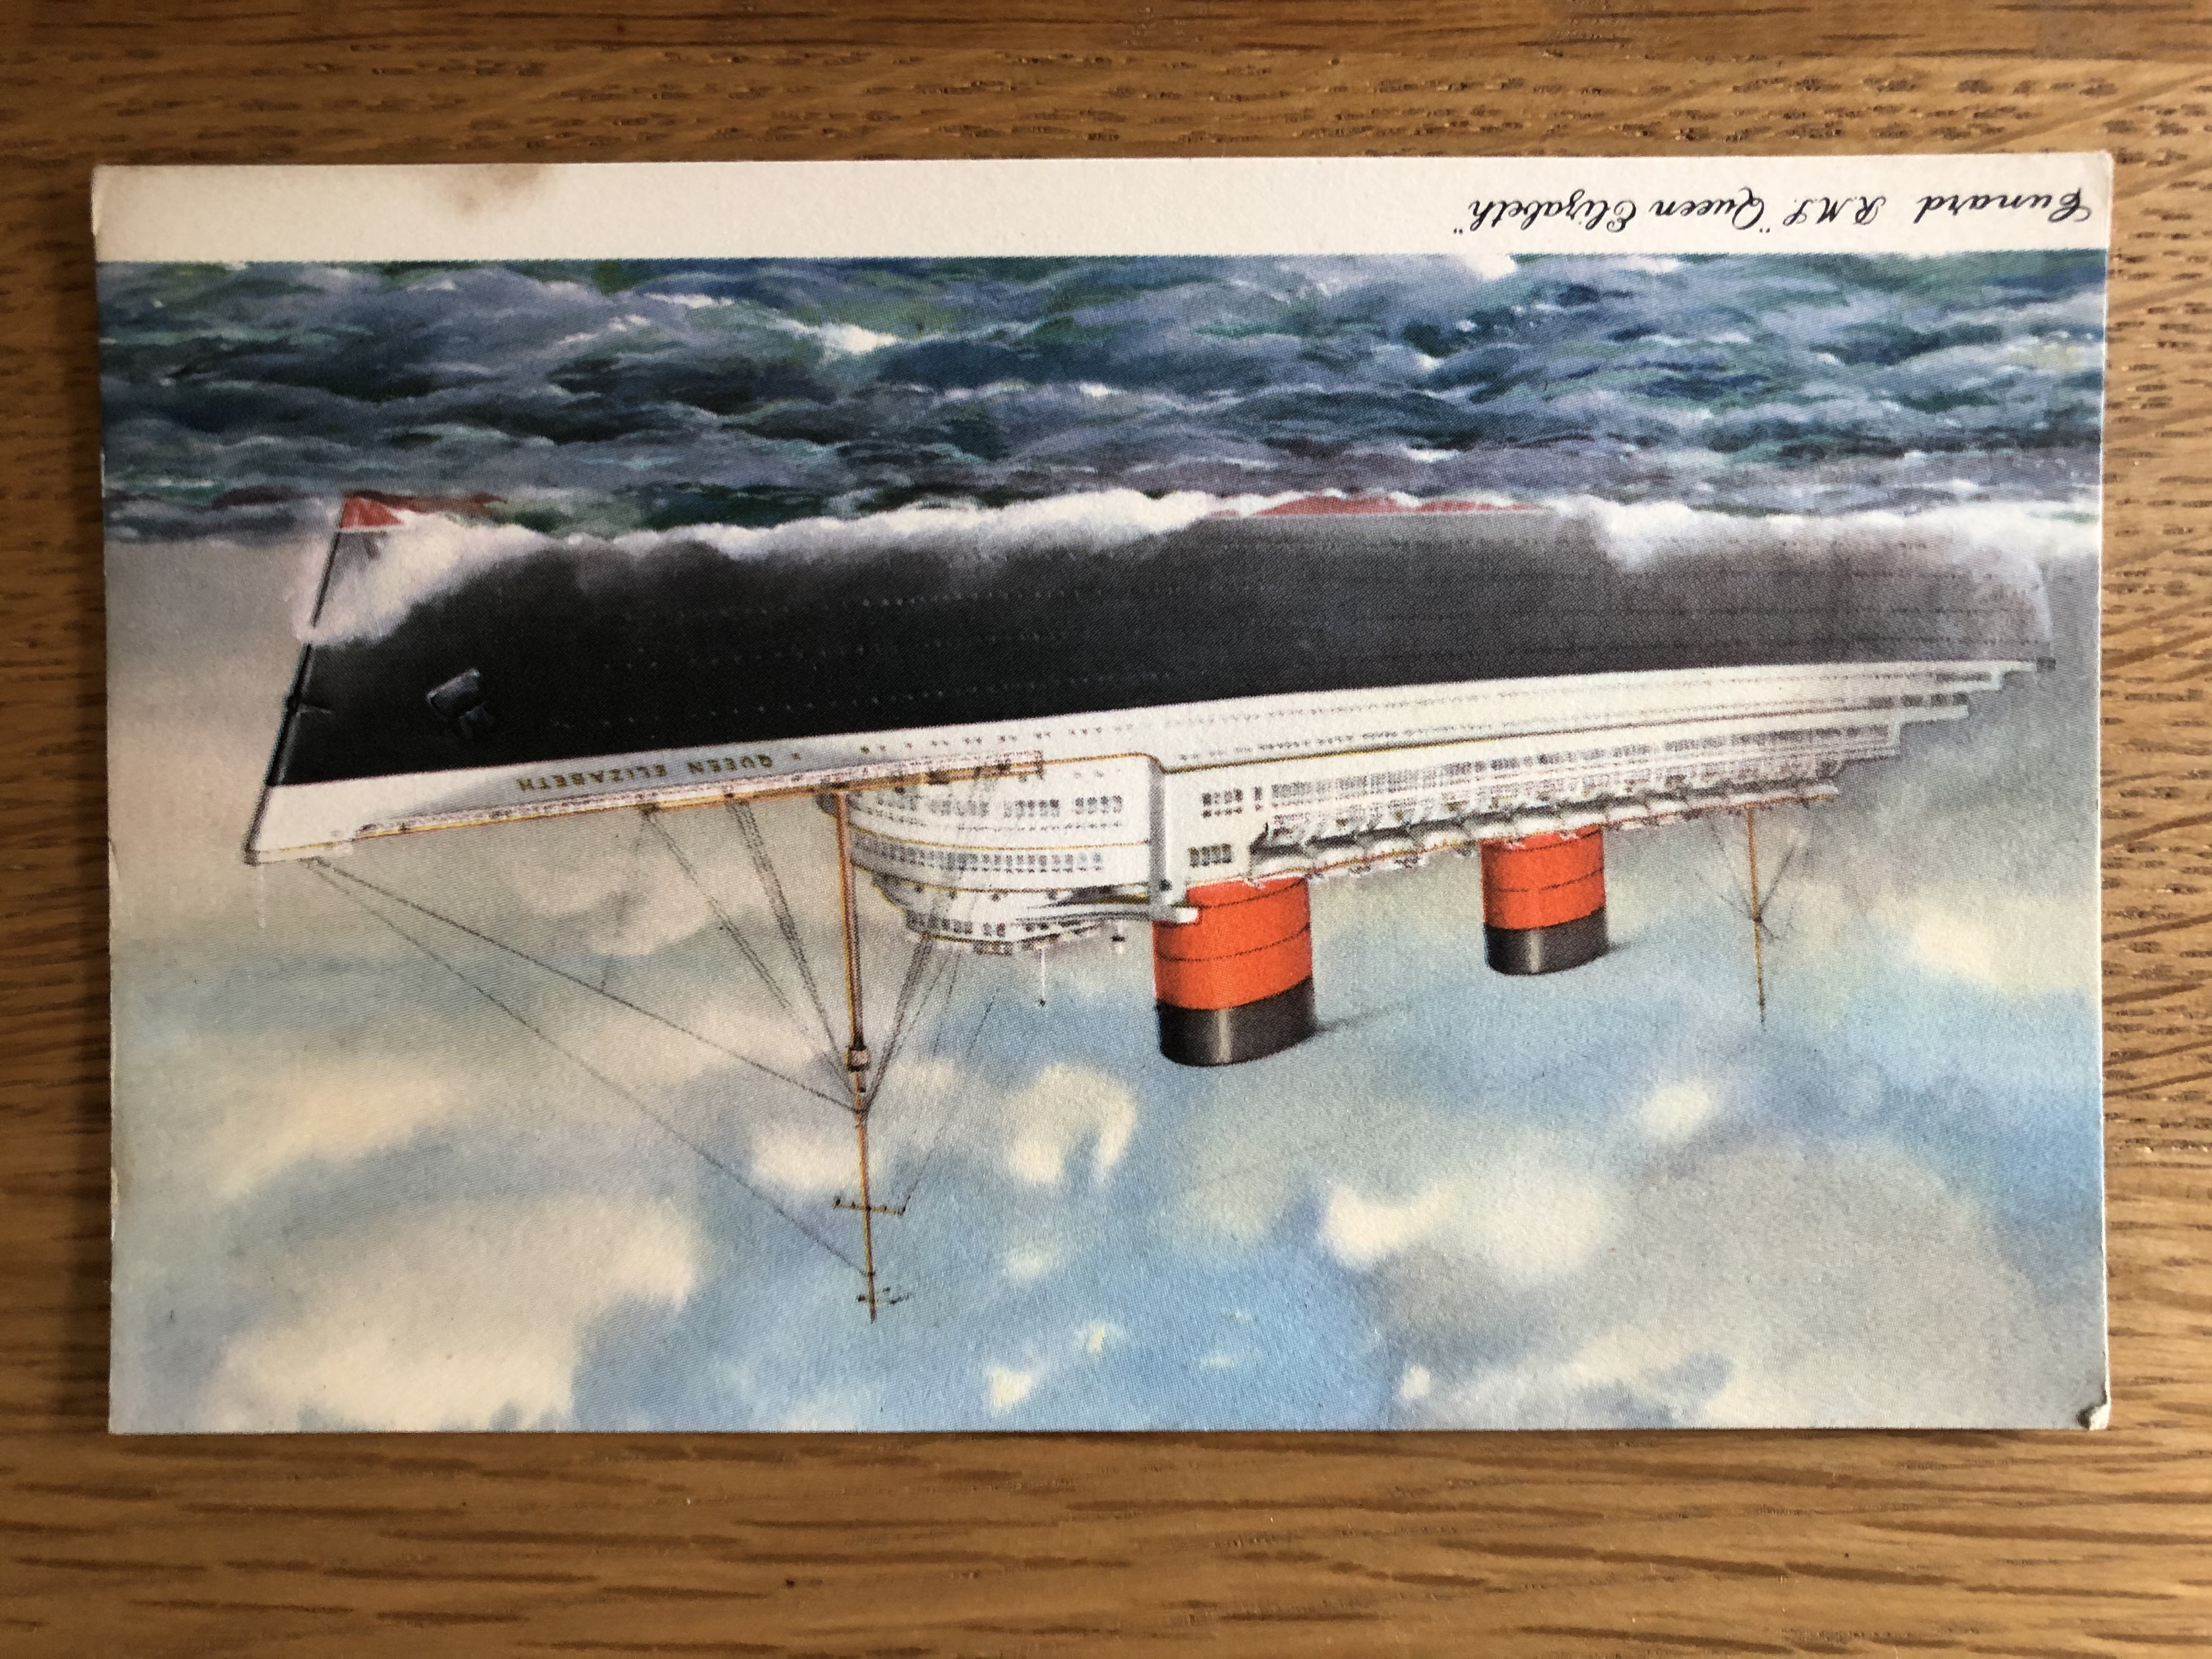 POSTCARD FROM THE CUNARD LINE VESSEL THE RMS QUEEN ELIZABETH